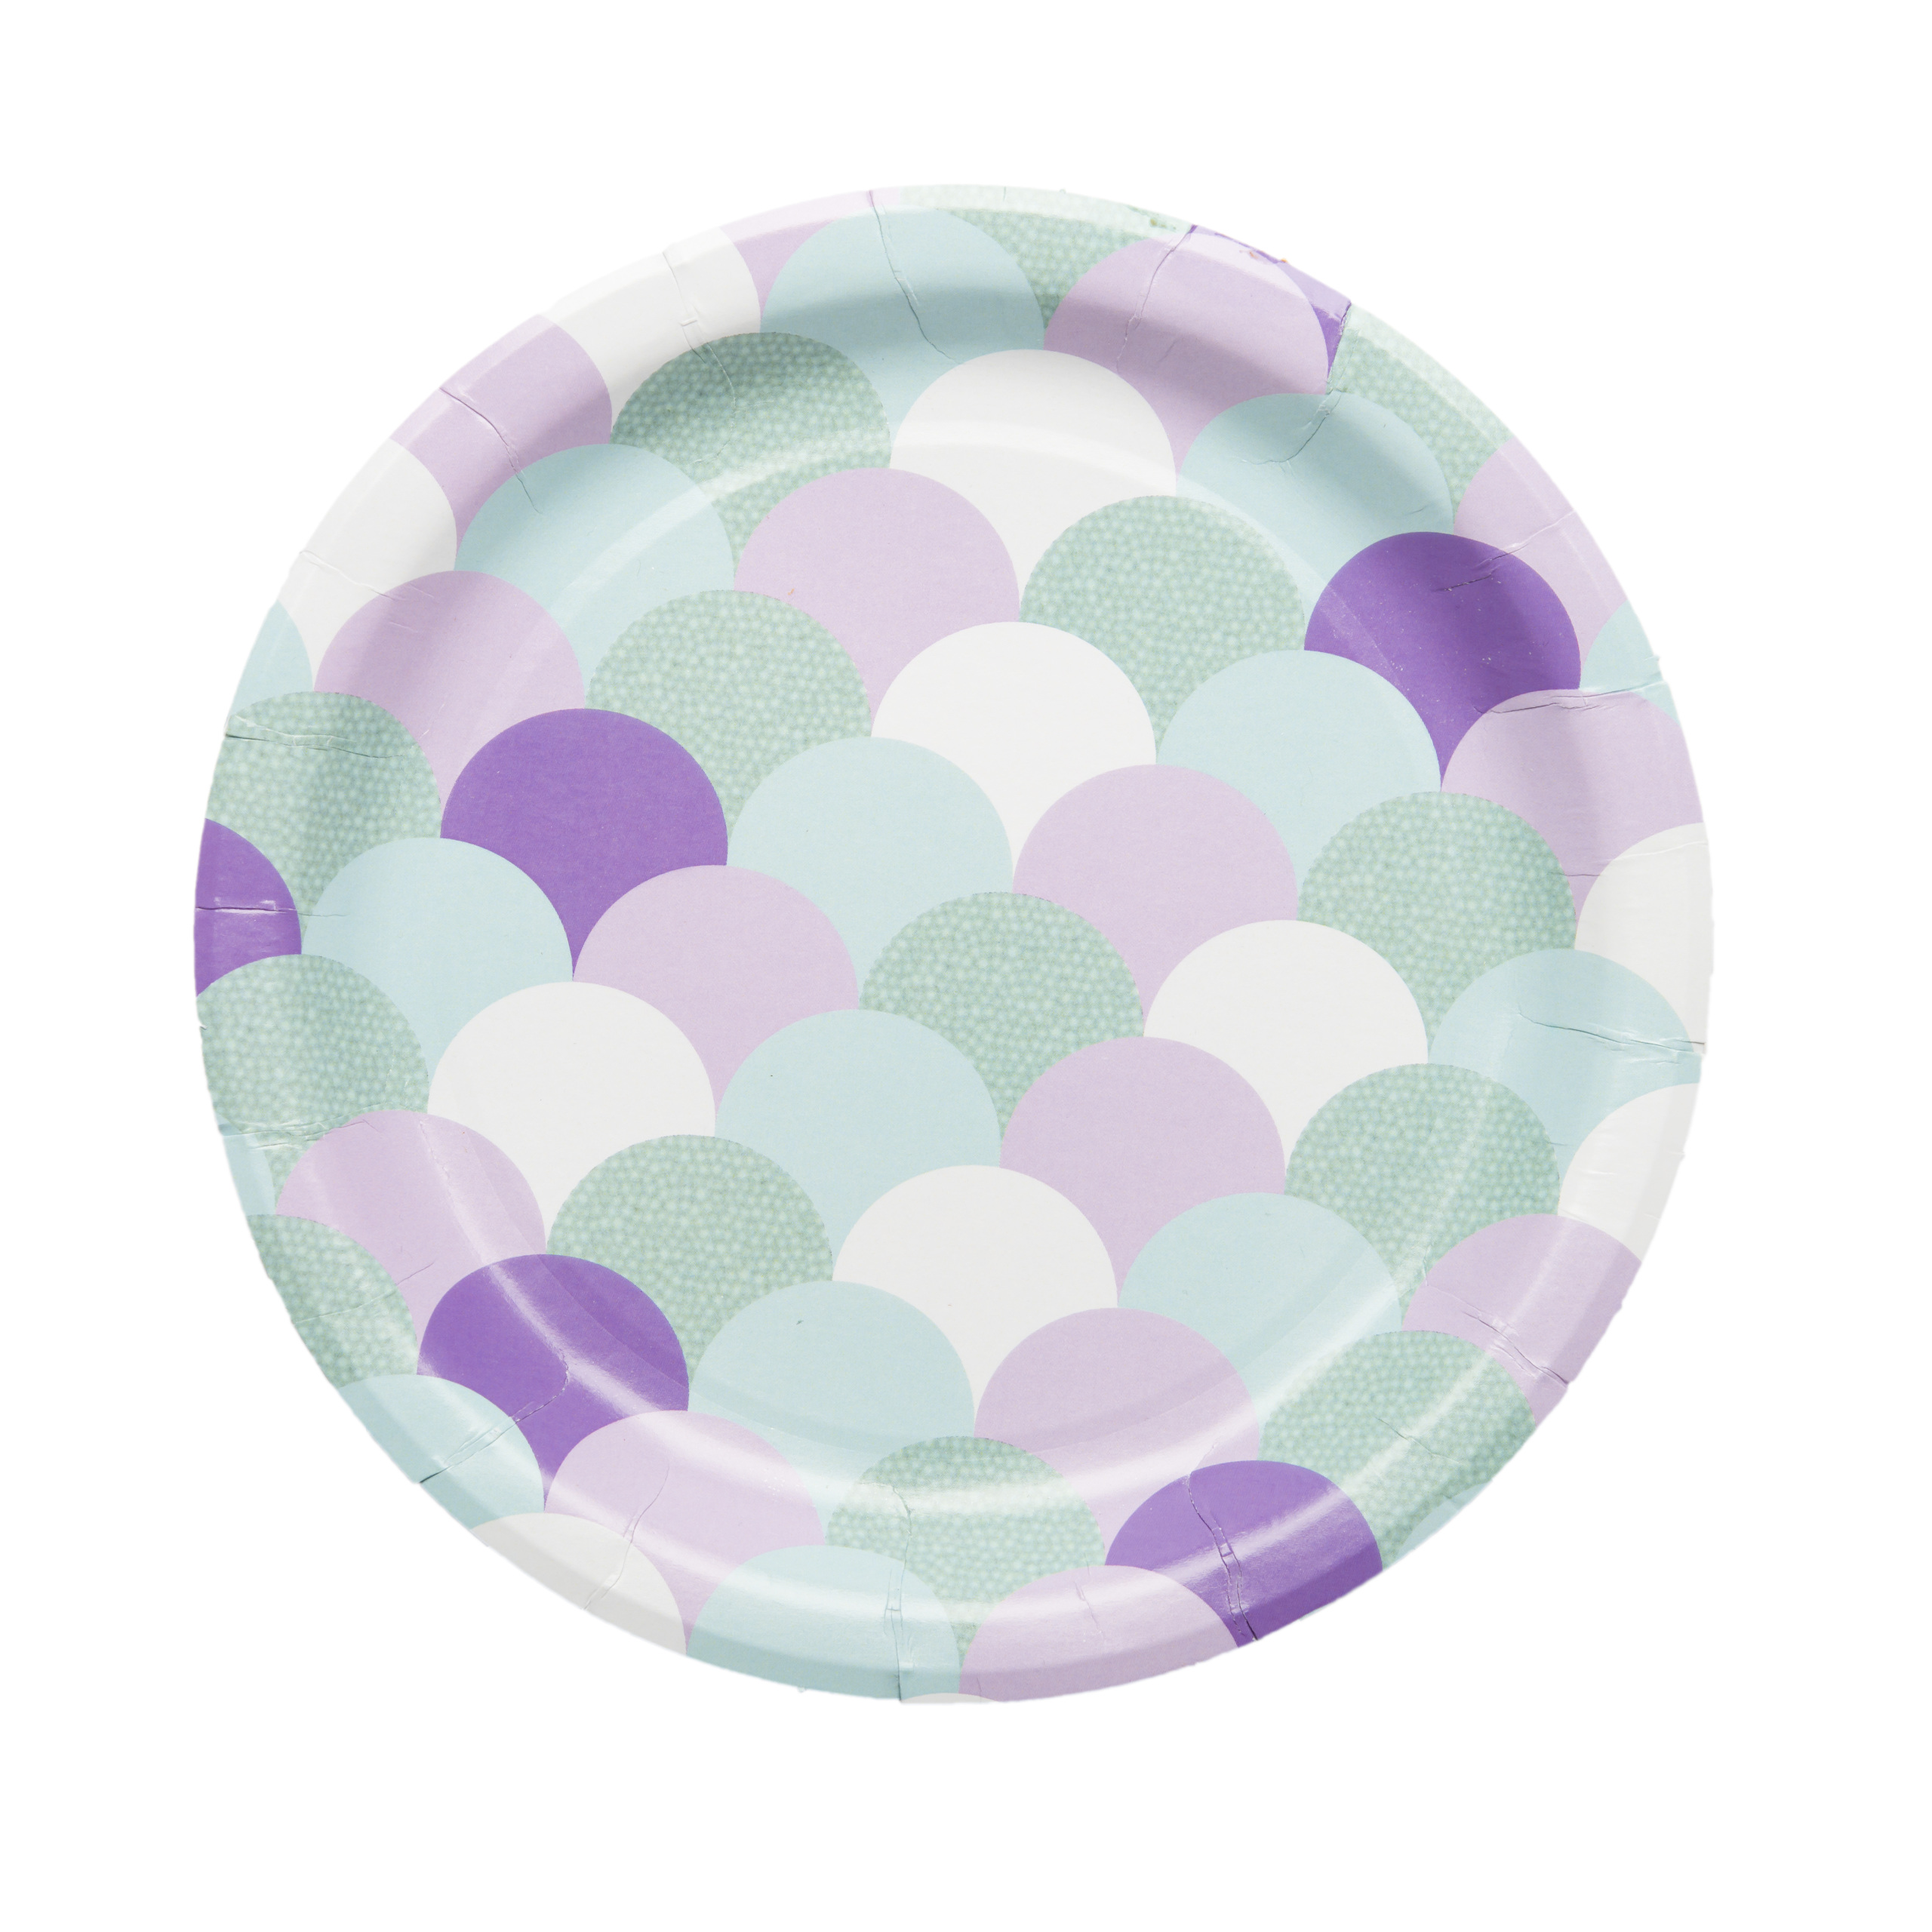 Mermaid Party Supplies- Paper Plates (Dessert)